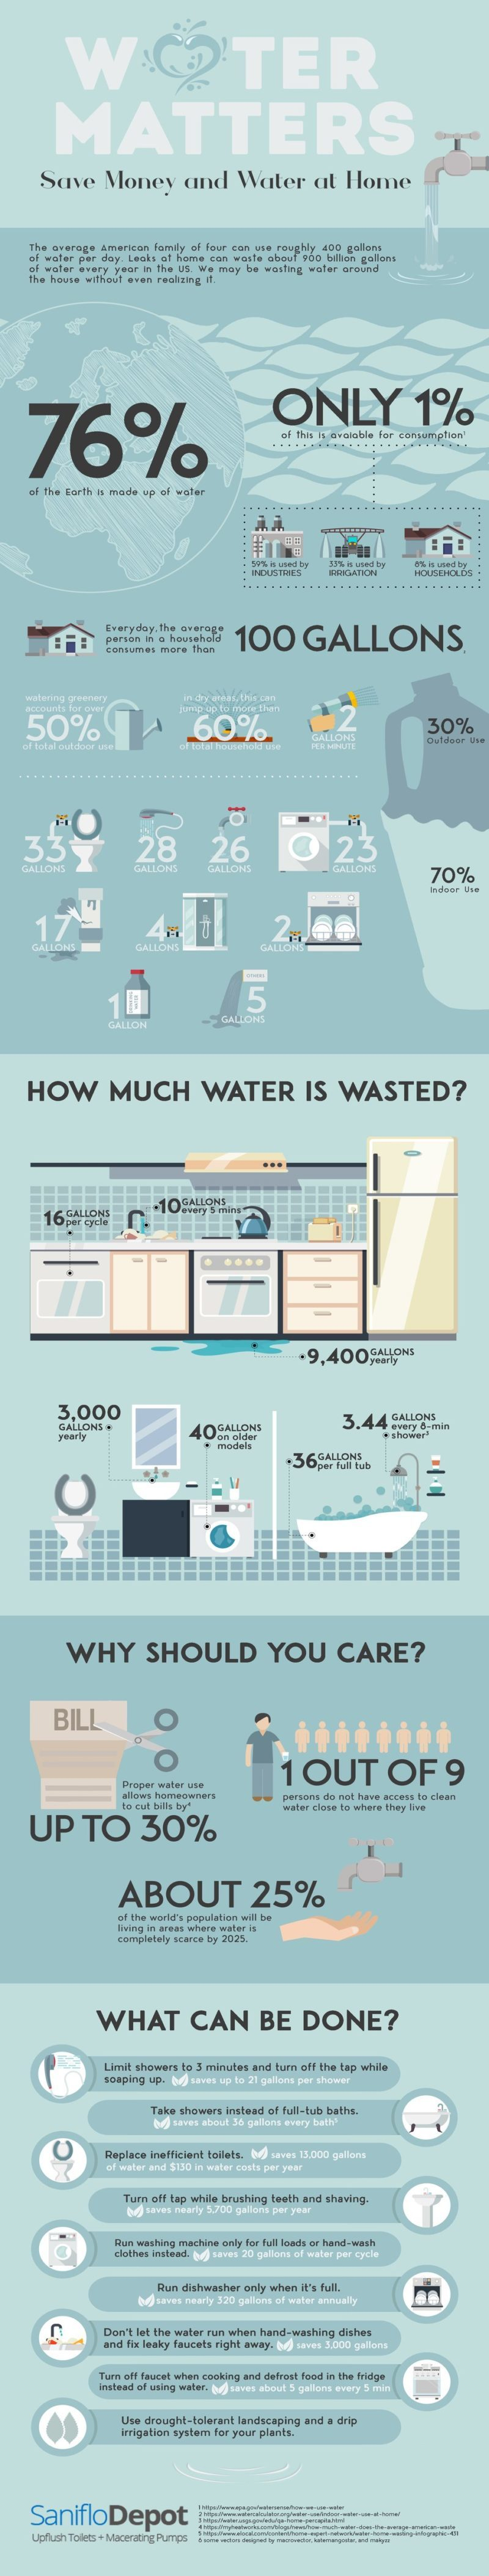 Homeowner's Visual Guide to Water Conservation #waterconservation #gogreen #beverlyhills #beverlyhillsmagazine #bevhillsmag